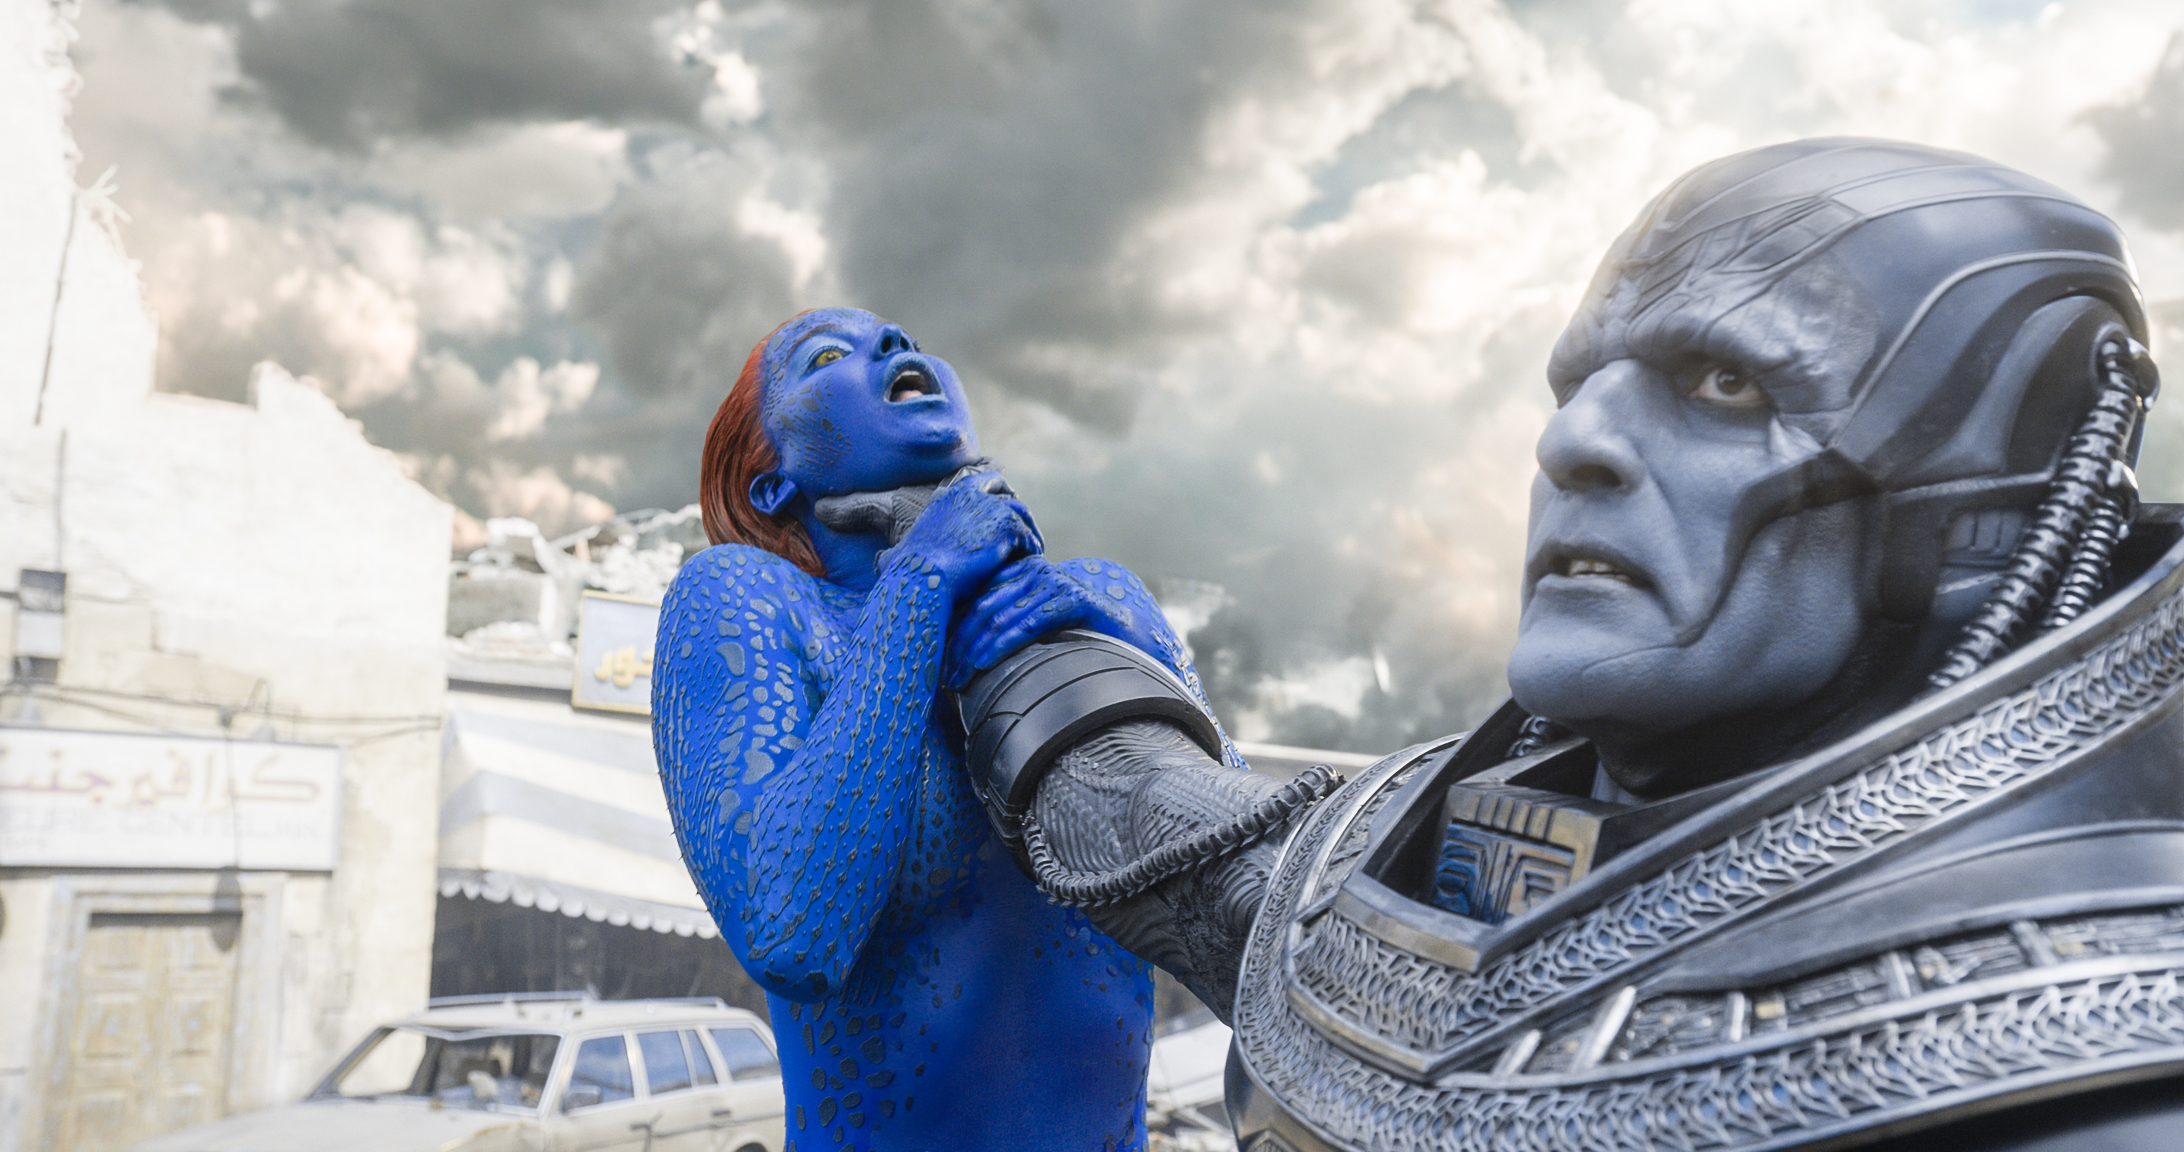 Luuk vs Luuk: X-Men Apocalypse